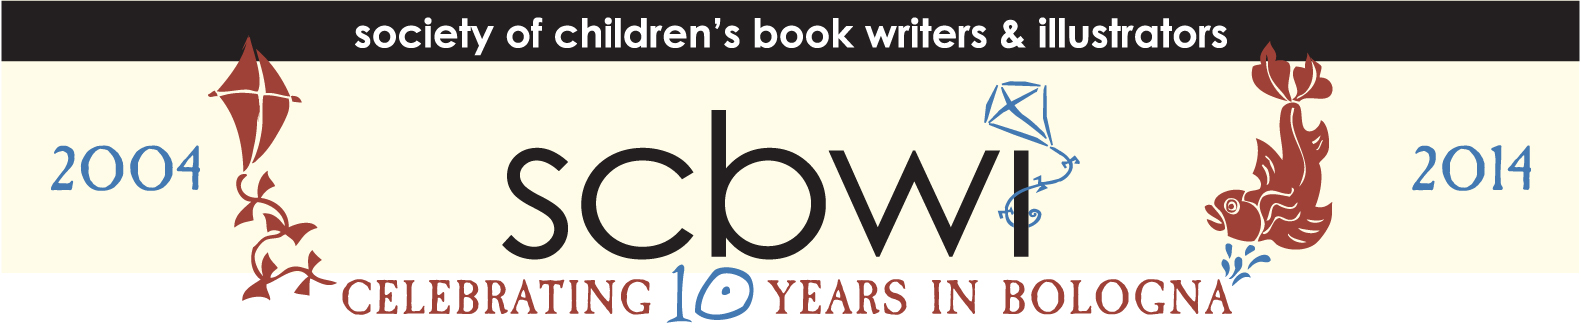 SCBWI Bologna Book Fair